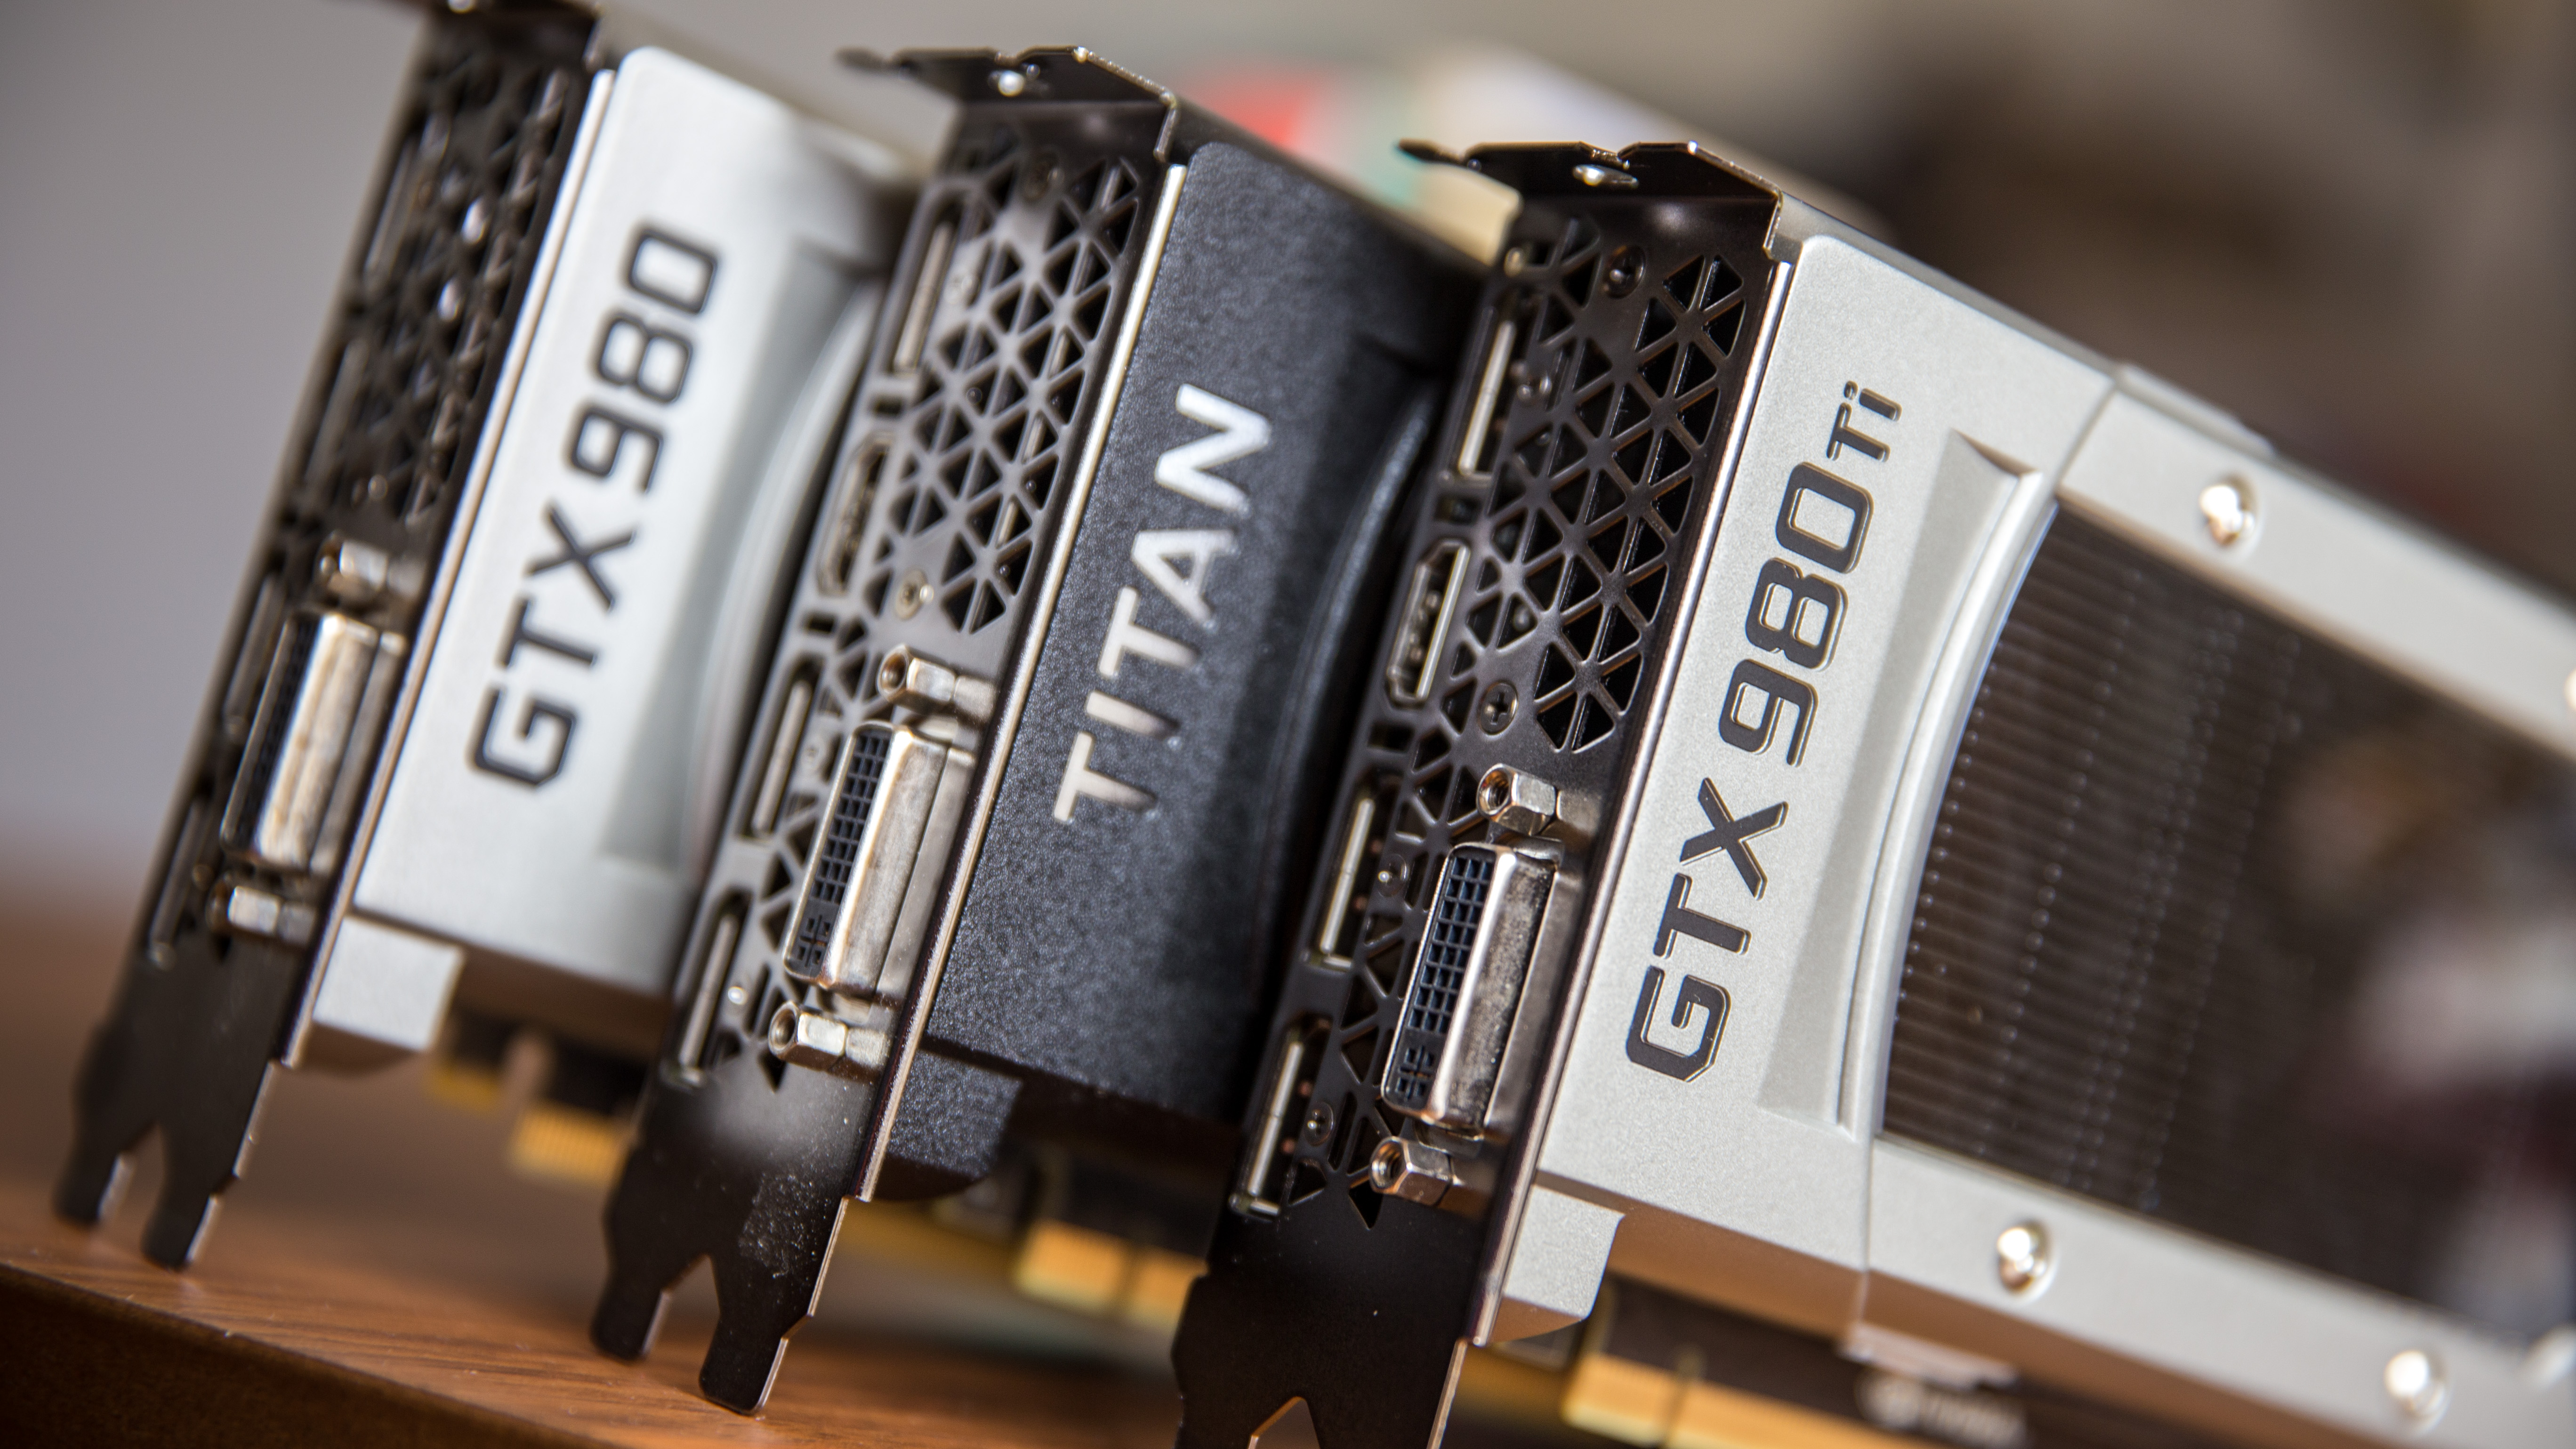 Testing: Nvidia GeForce GTX 980 Ti 4K Benchmarks - Tested